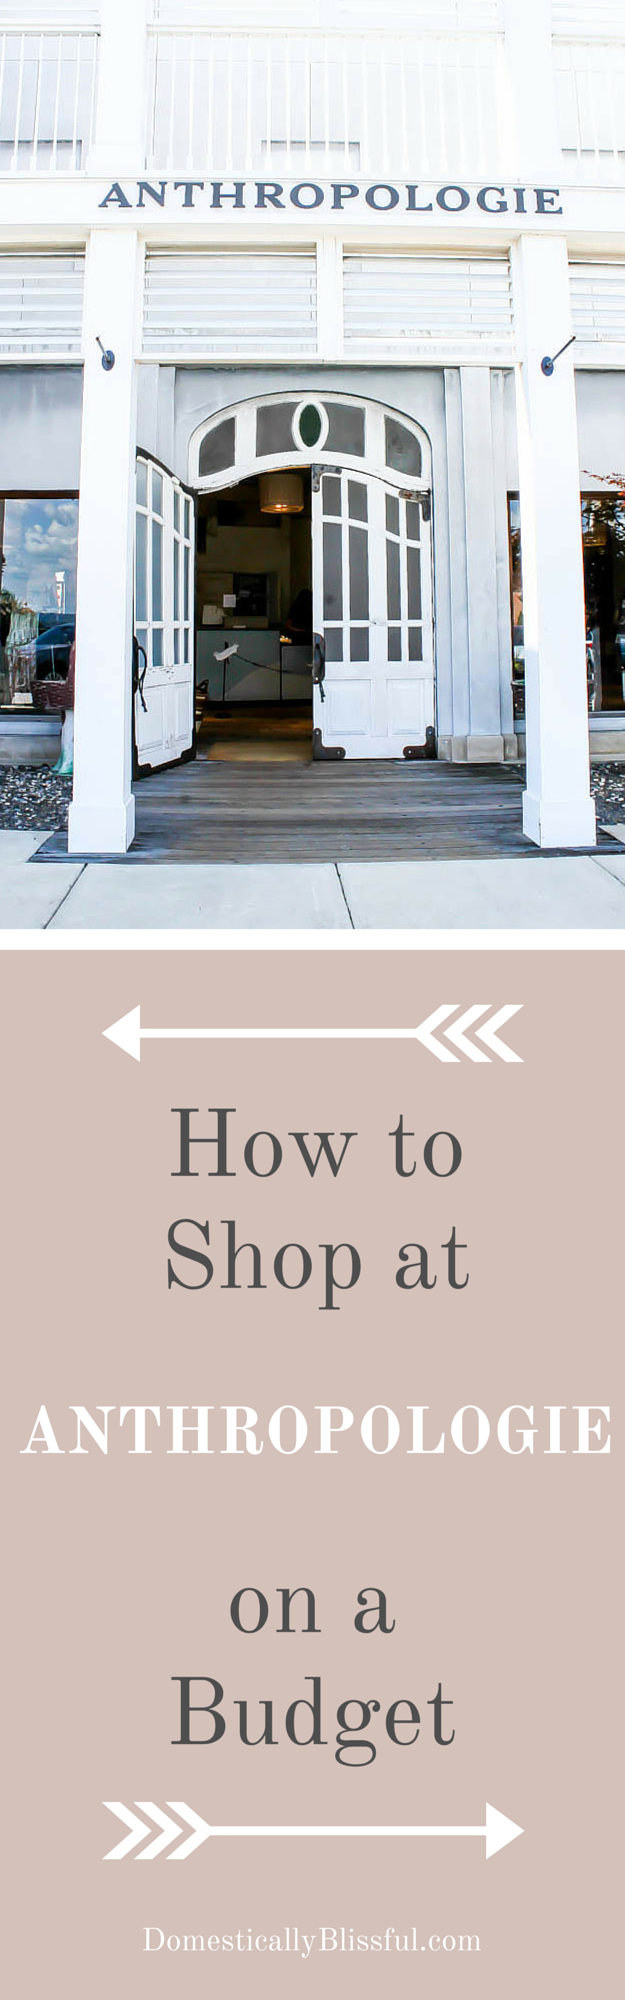 How to Shop at Anthropologie on a Budget